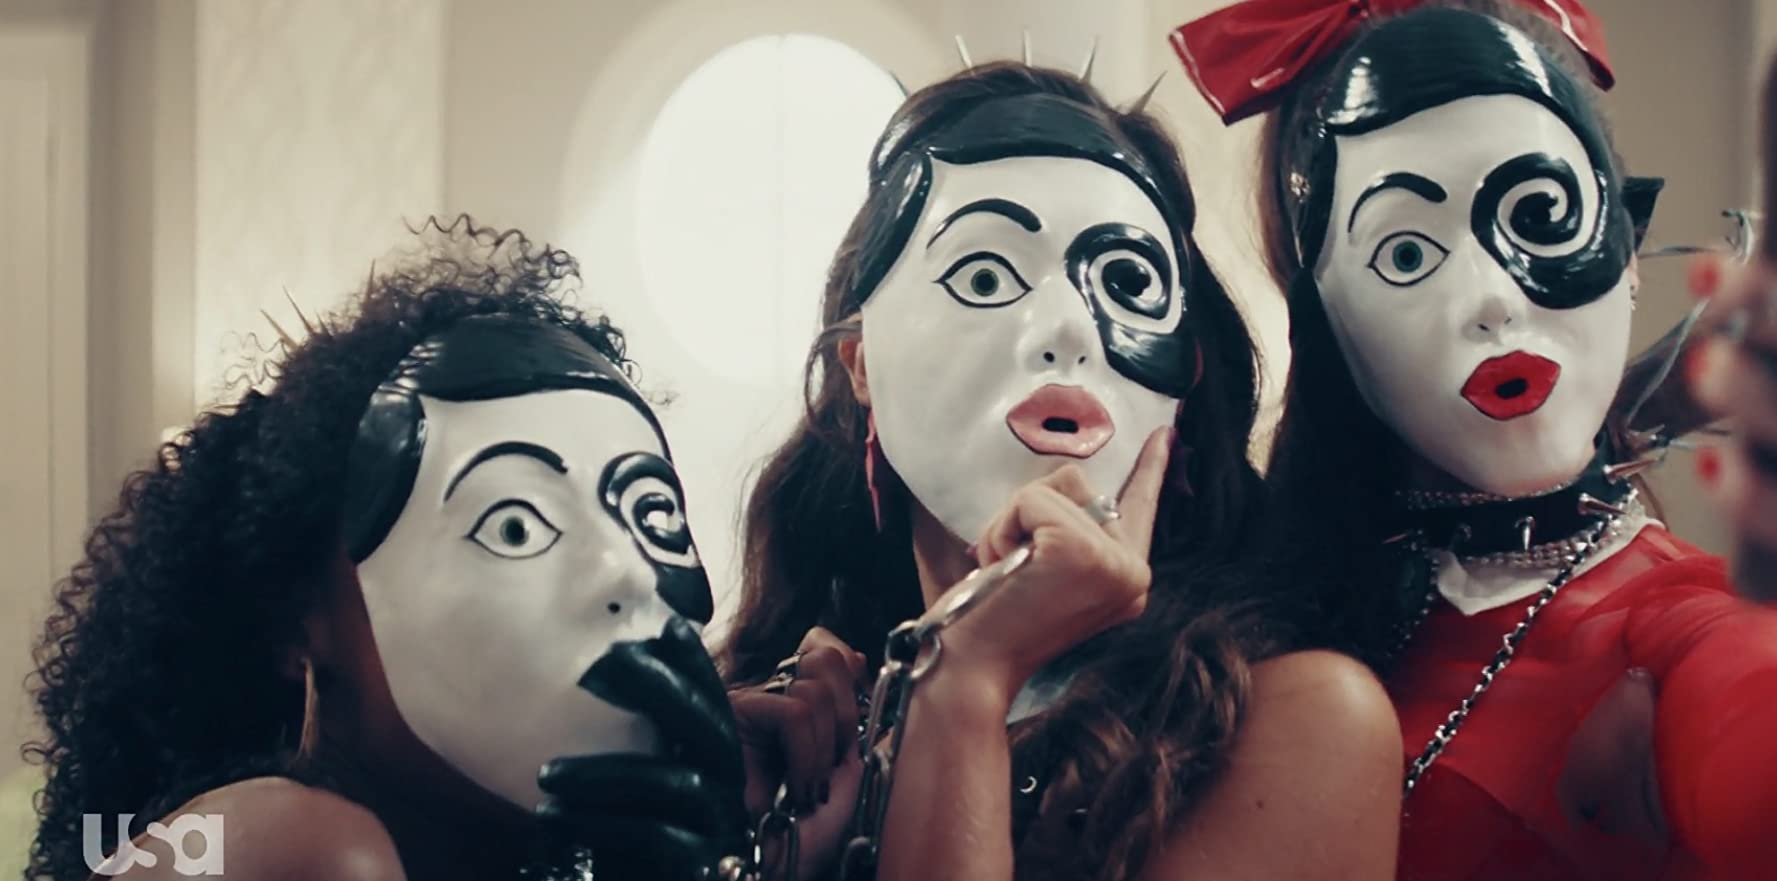 Still of Alexa Ketchum, Lacy Hartselle, Raquel Ascension in The Purge